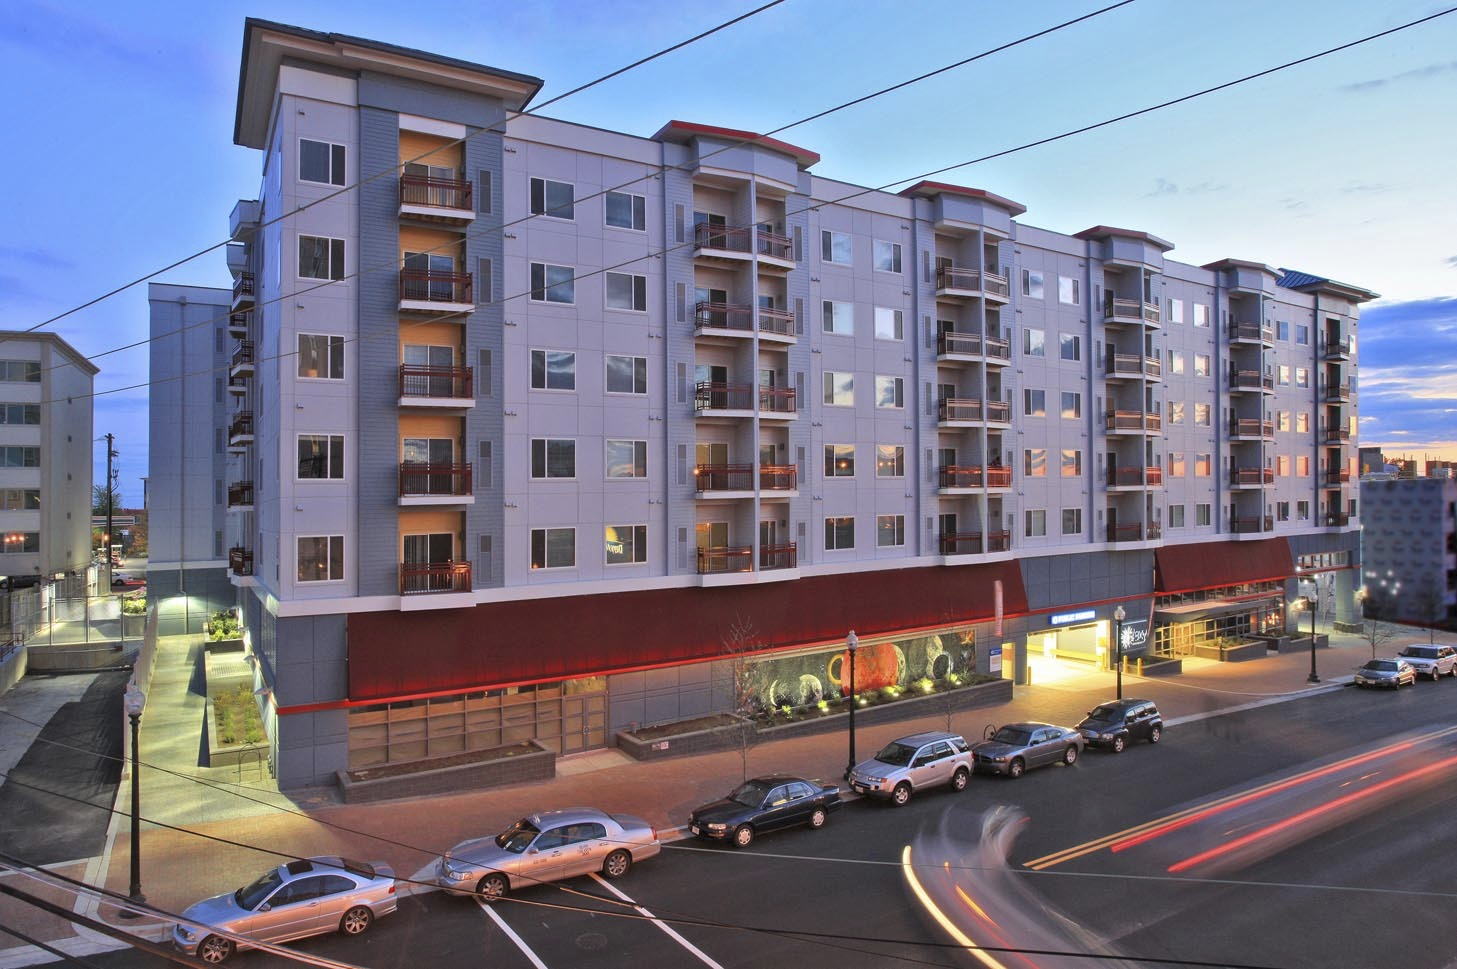 CBG builds The Galaxy, a 195-Unit Apartment Building with Four-Level Underground Cast-in-Place Parking in Silver Spring, MD